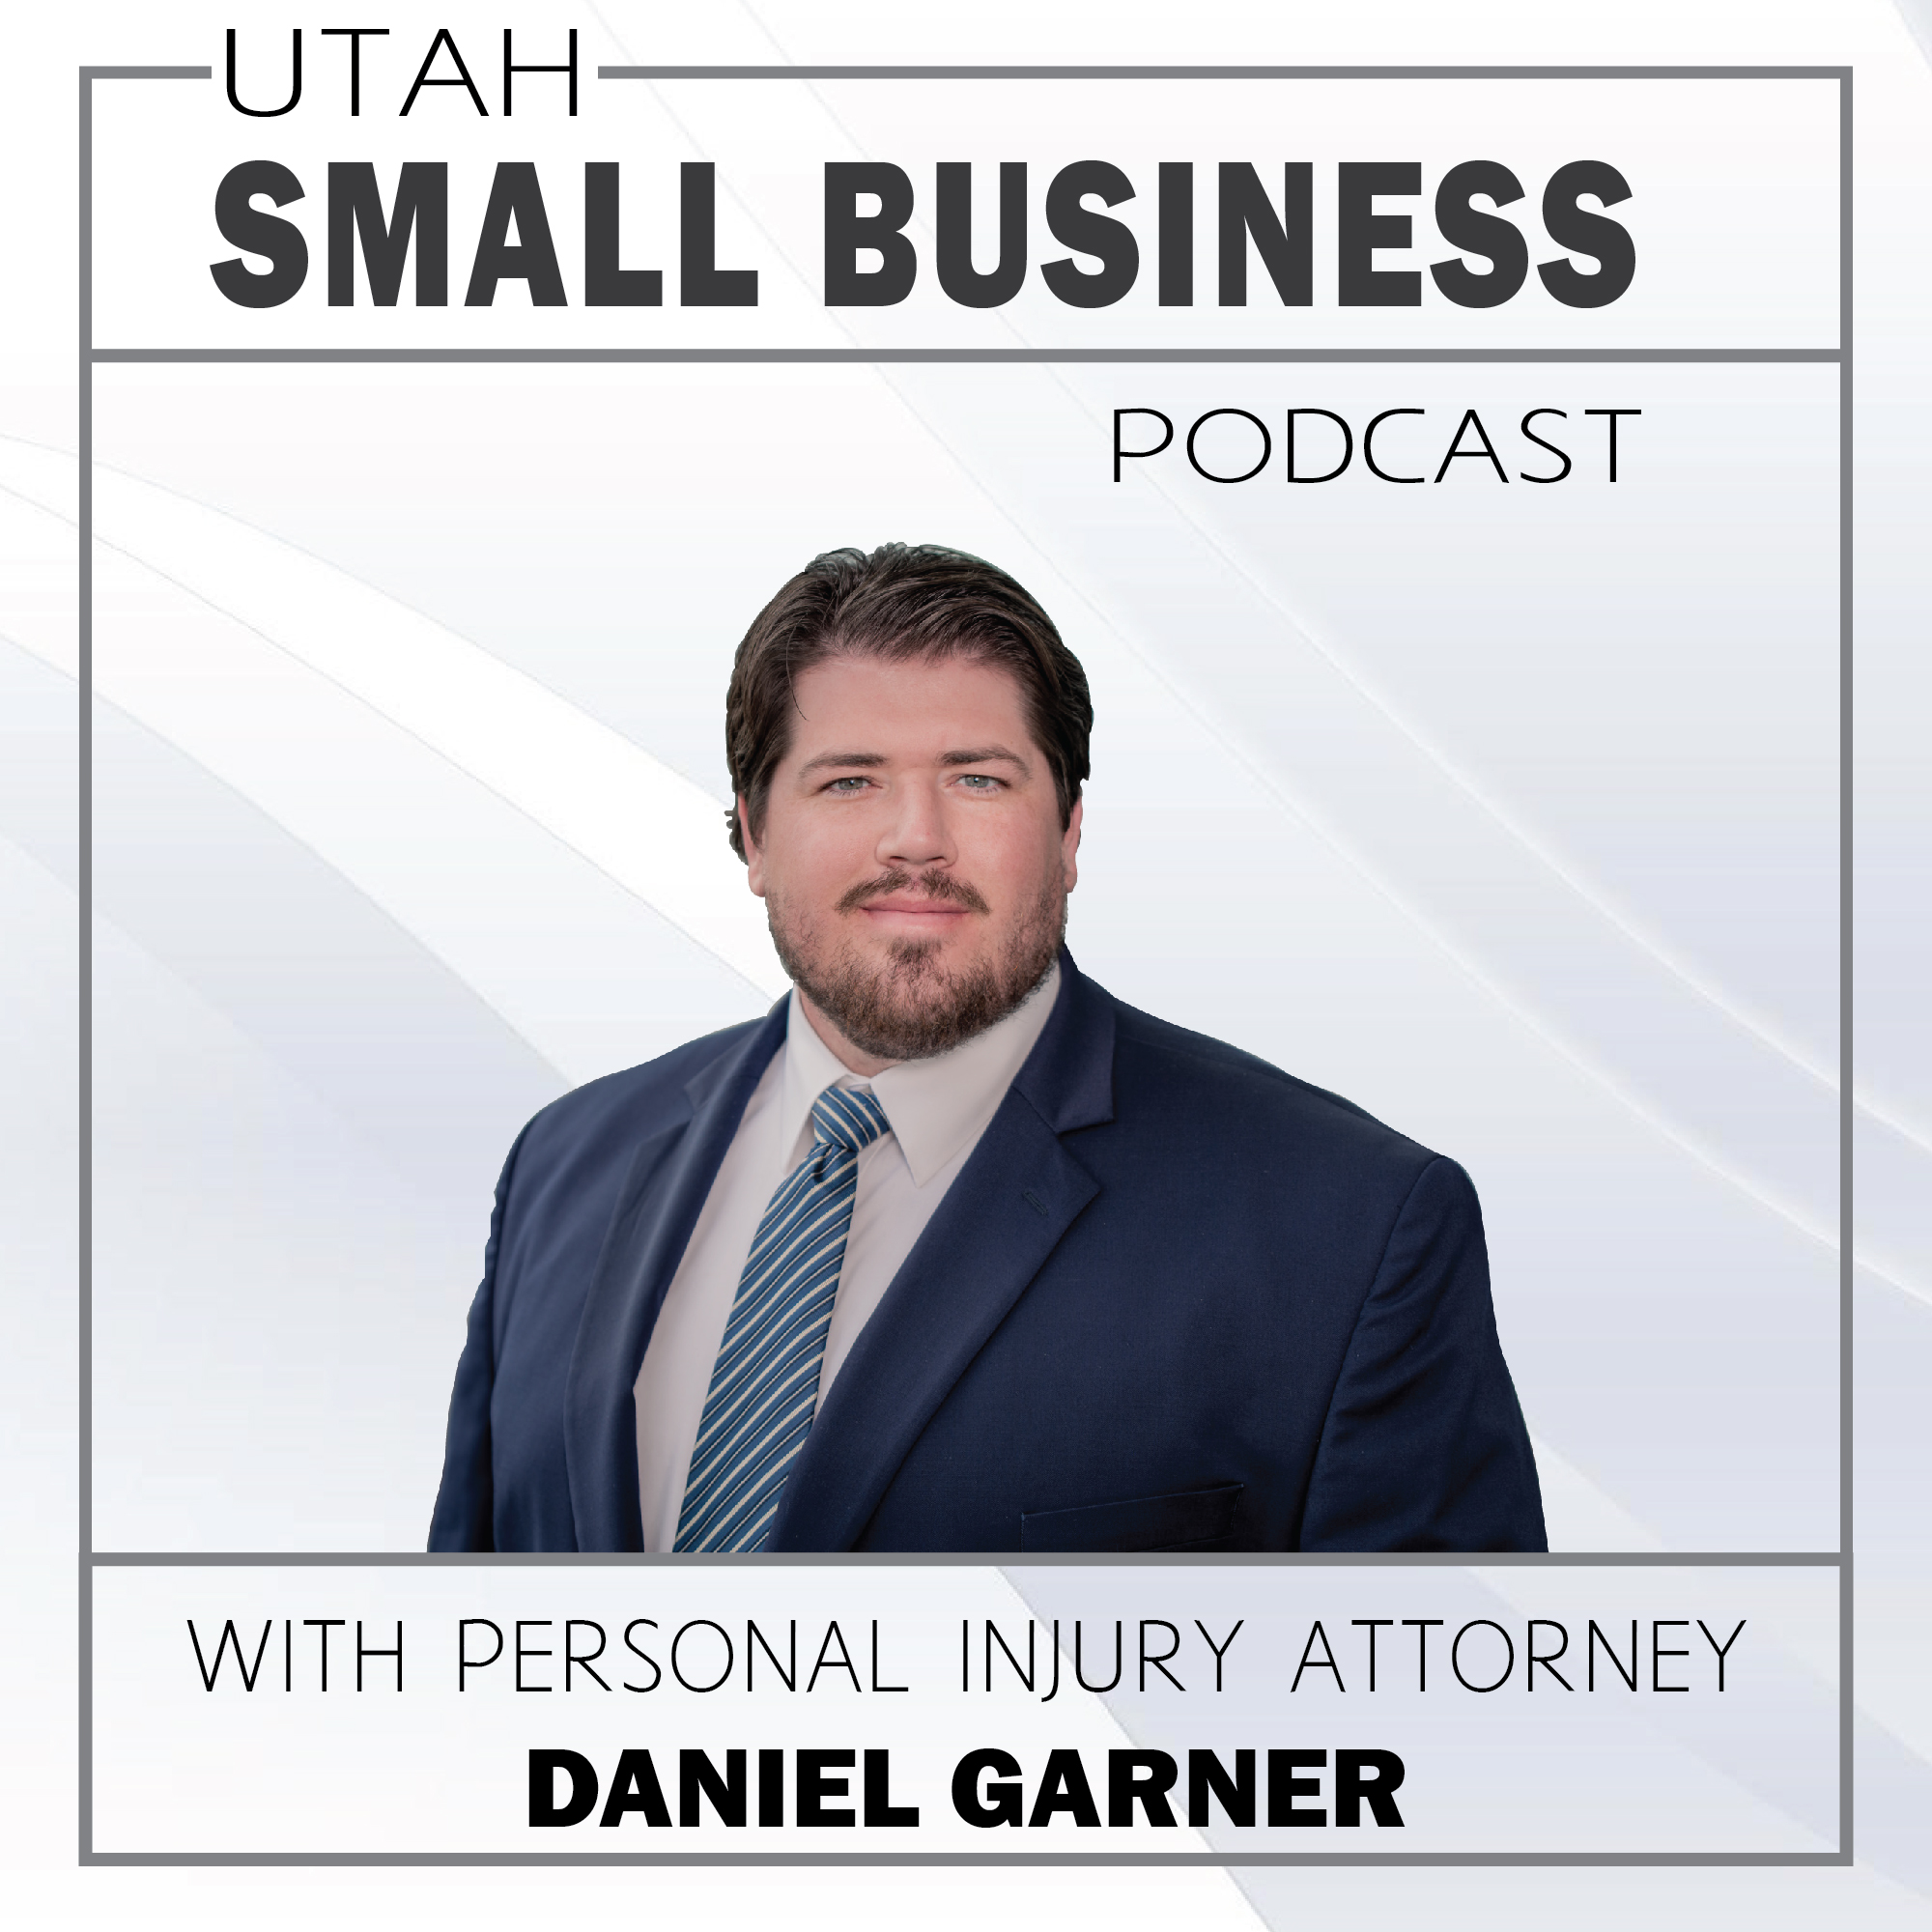 Utah Small Business Podcast